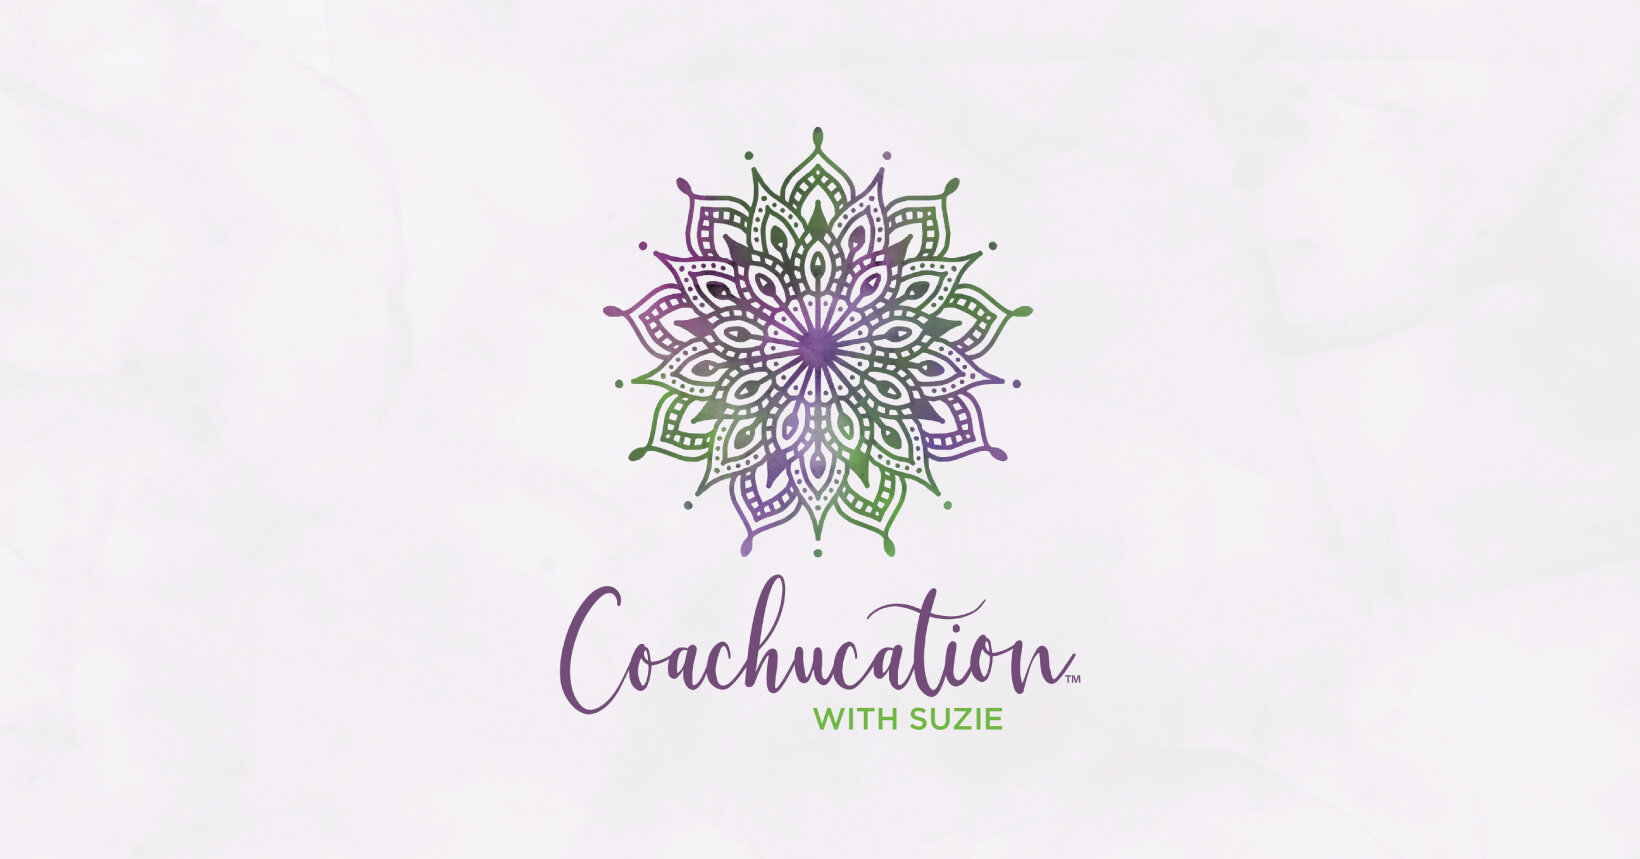 Coachucation™️ with Suzie - Intuitive Brand Designer